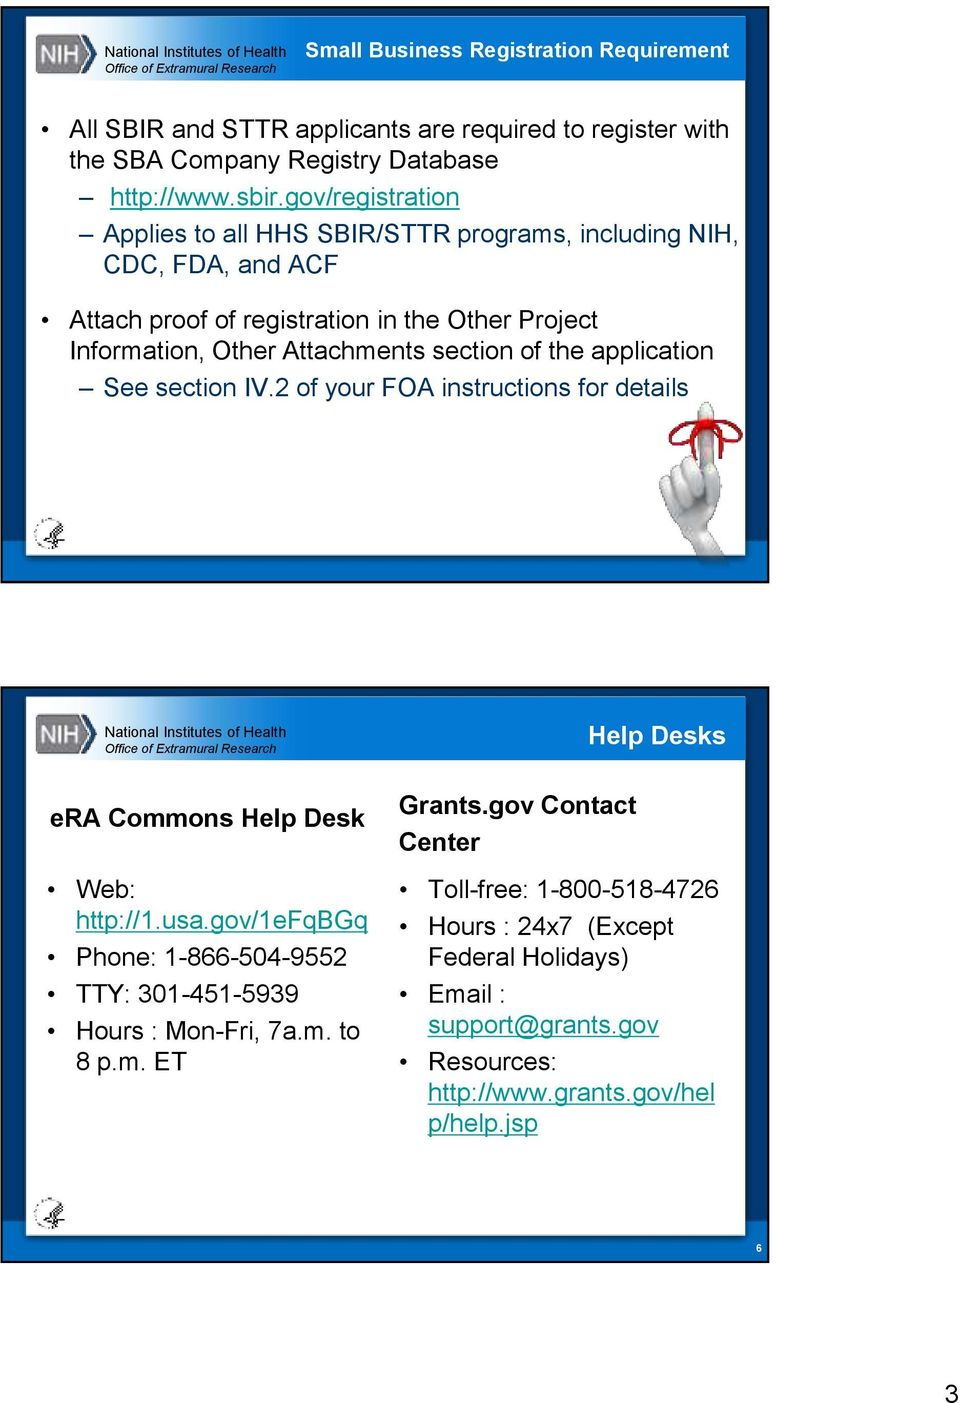 Lovely Gov/registration Applies To All HHS SBIR/STTR Programs, Including NIH, CDC Pictures Gallery